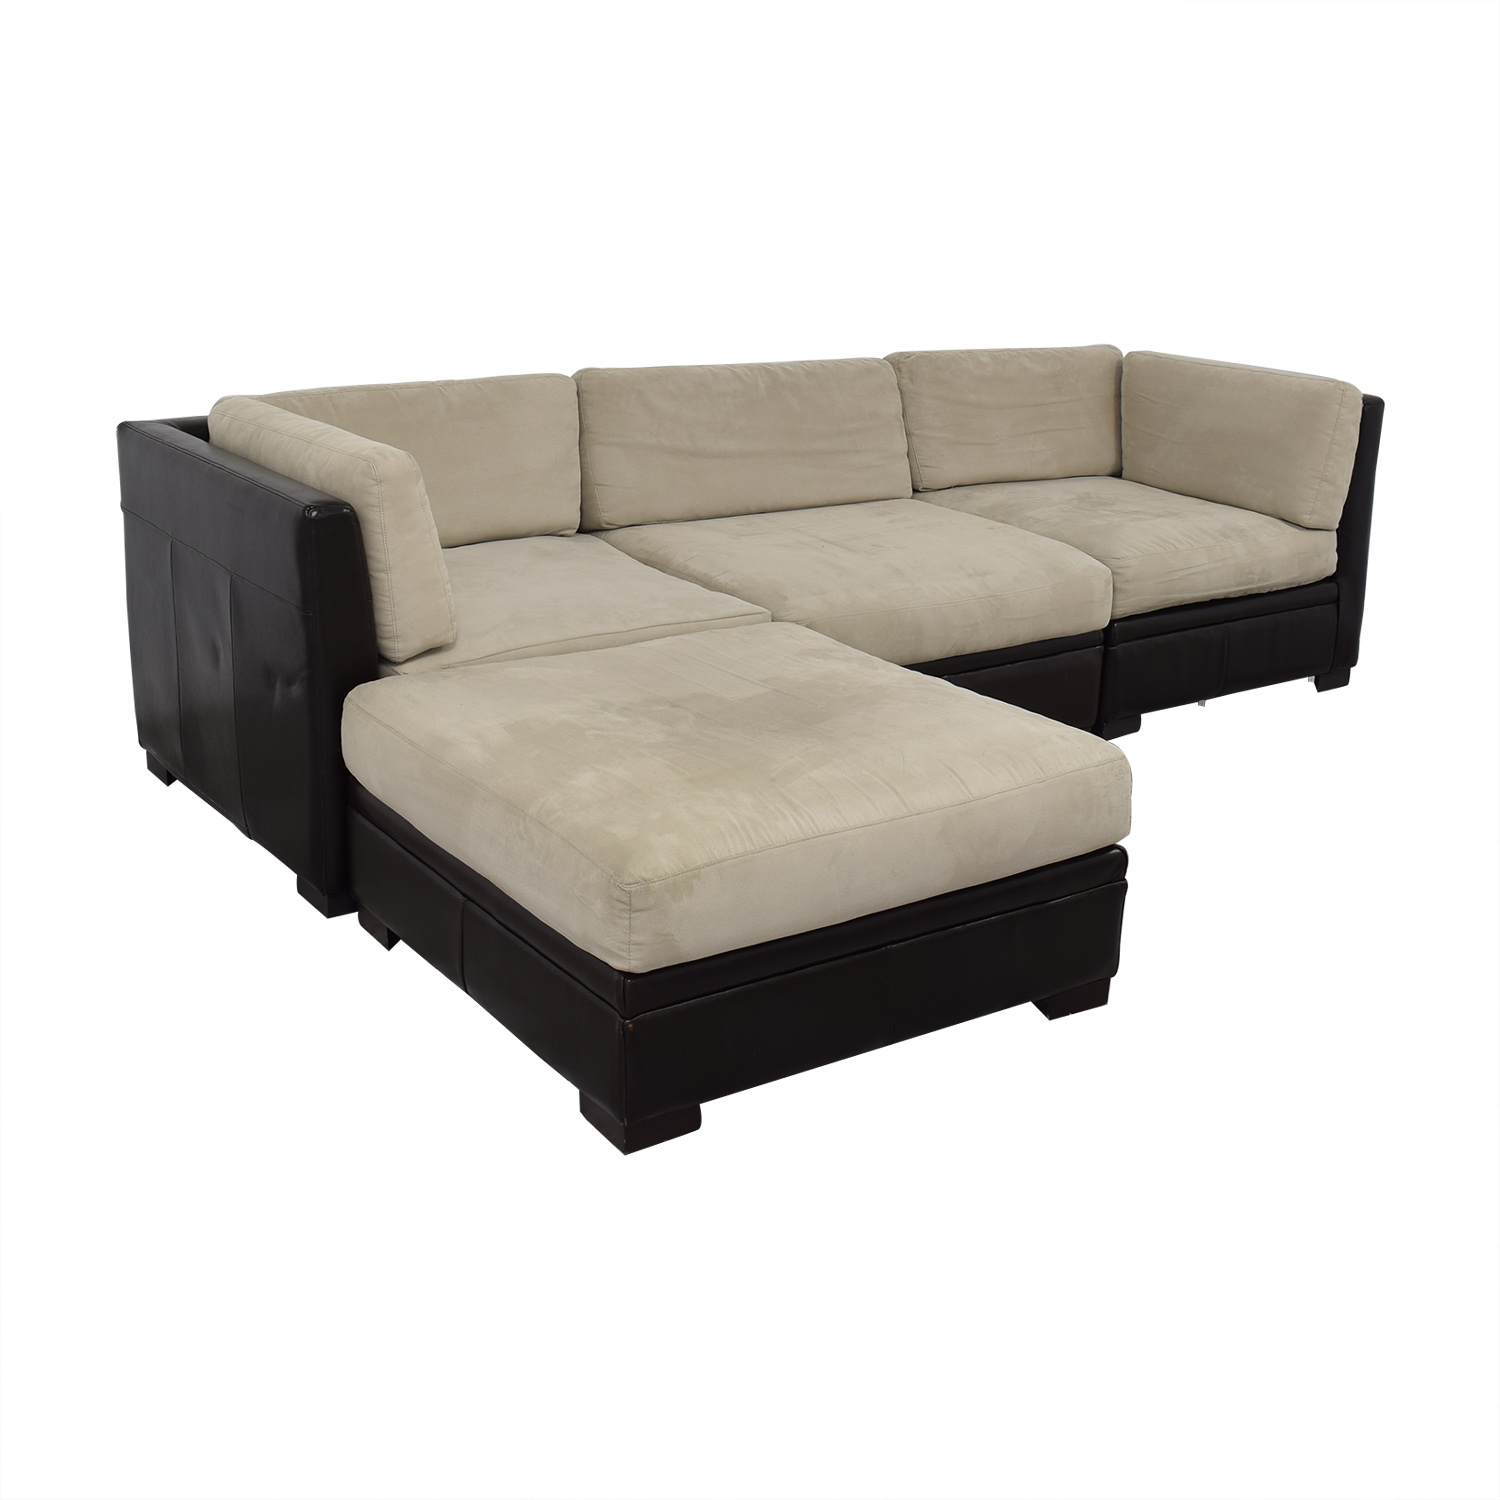 Fine 53 Off Macys Macys Sectional With Ottoman Sofas Gmtry Best Dining Table And Chair Ideas Images Gmtryco